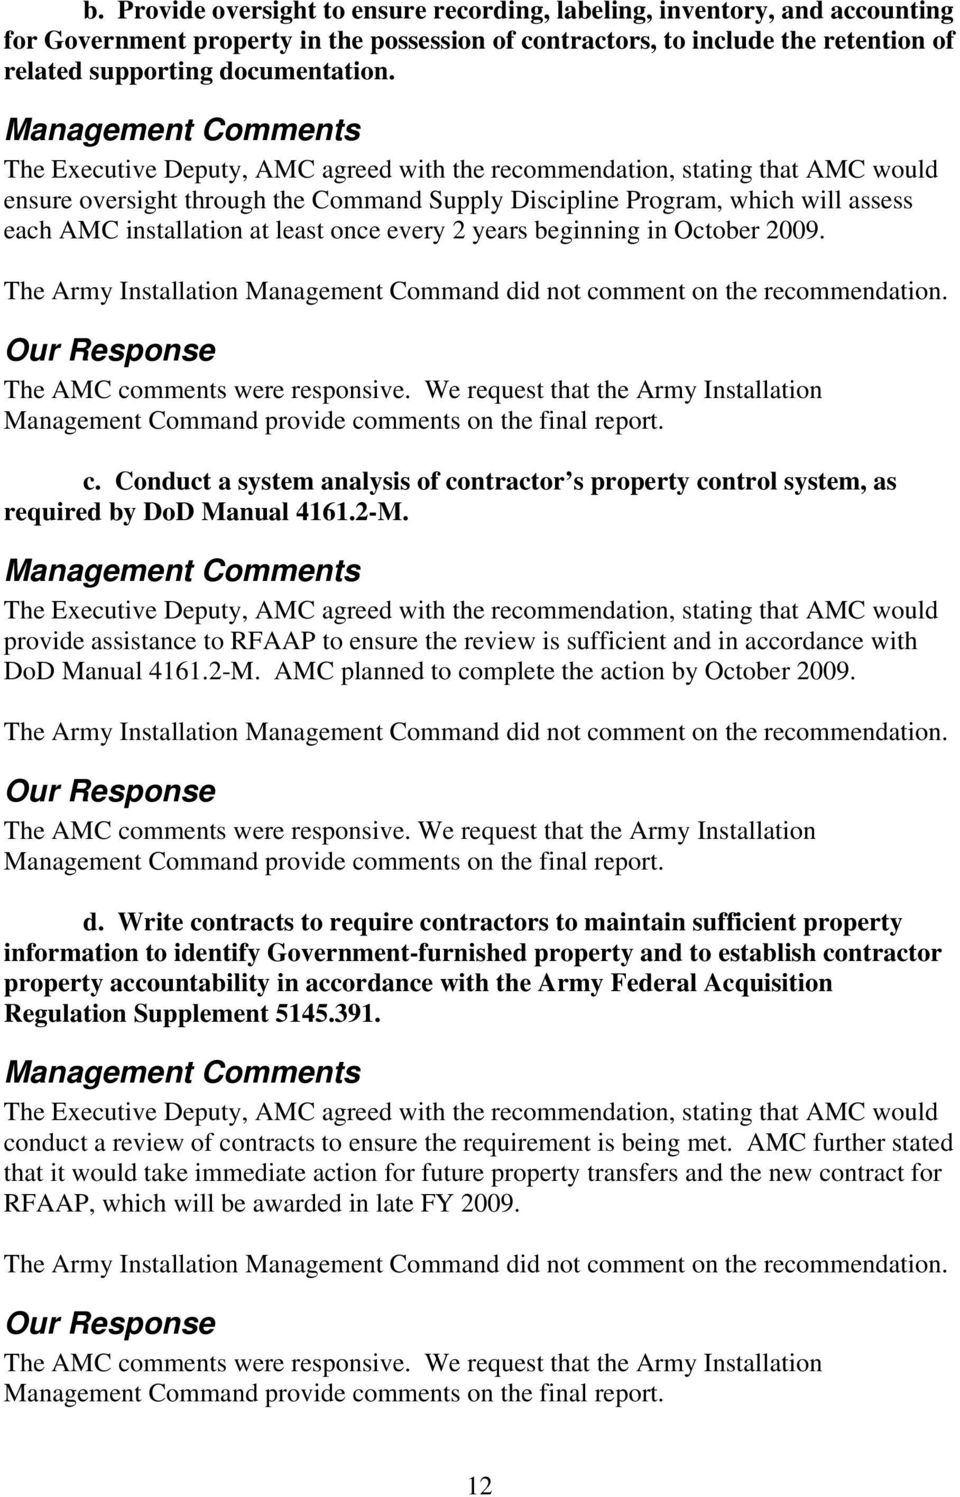 installation at least once every 2 years beginning in October 2009. The Army Installation Management Command did not comment on the recommendation. Our Response The AMC comments were responsive.